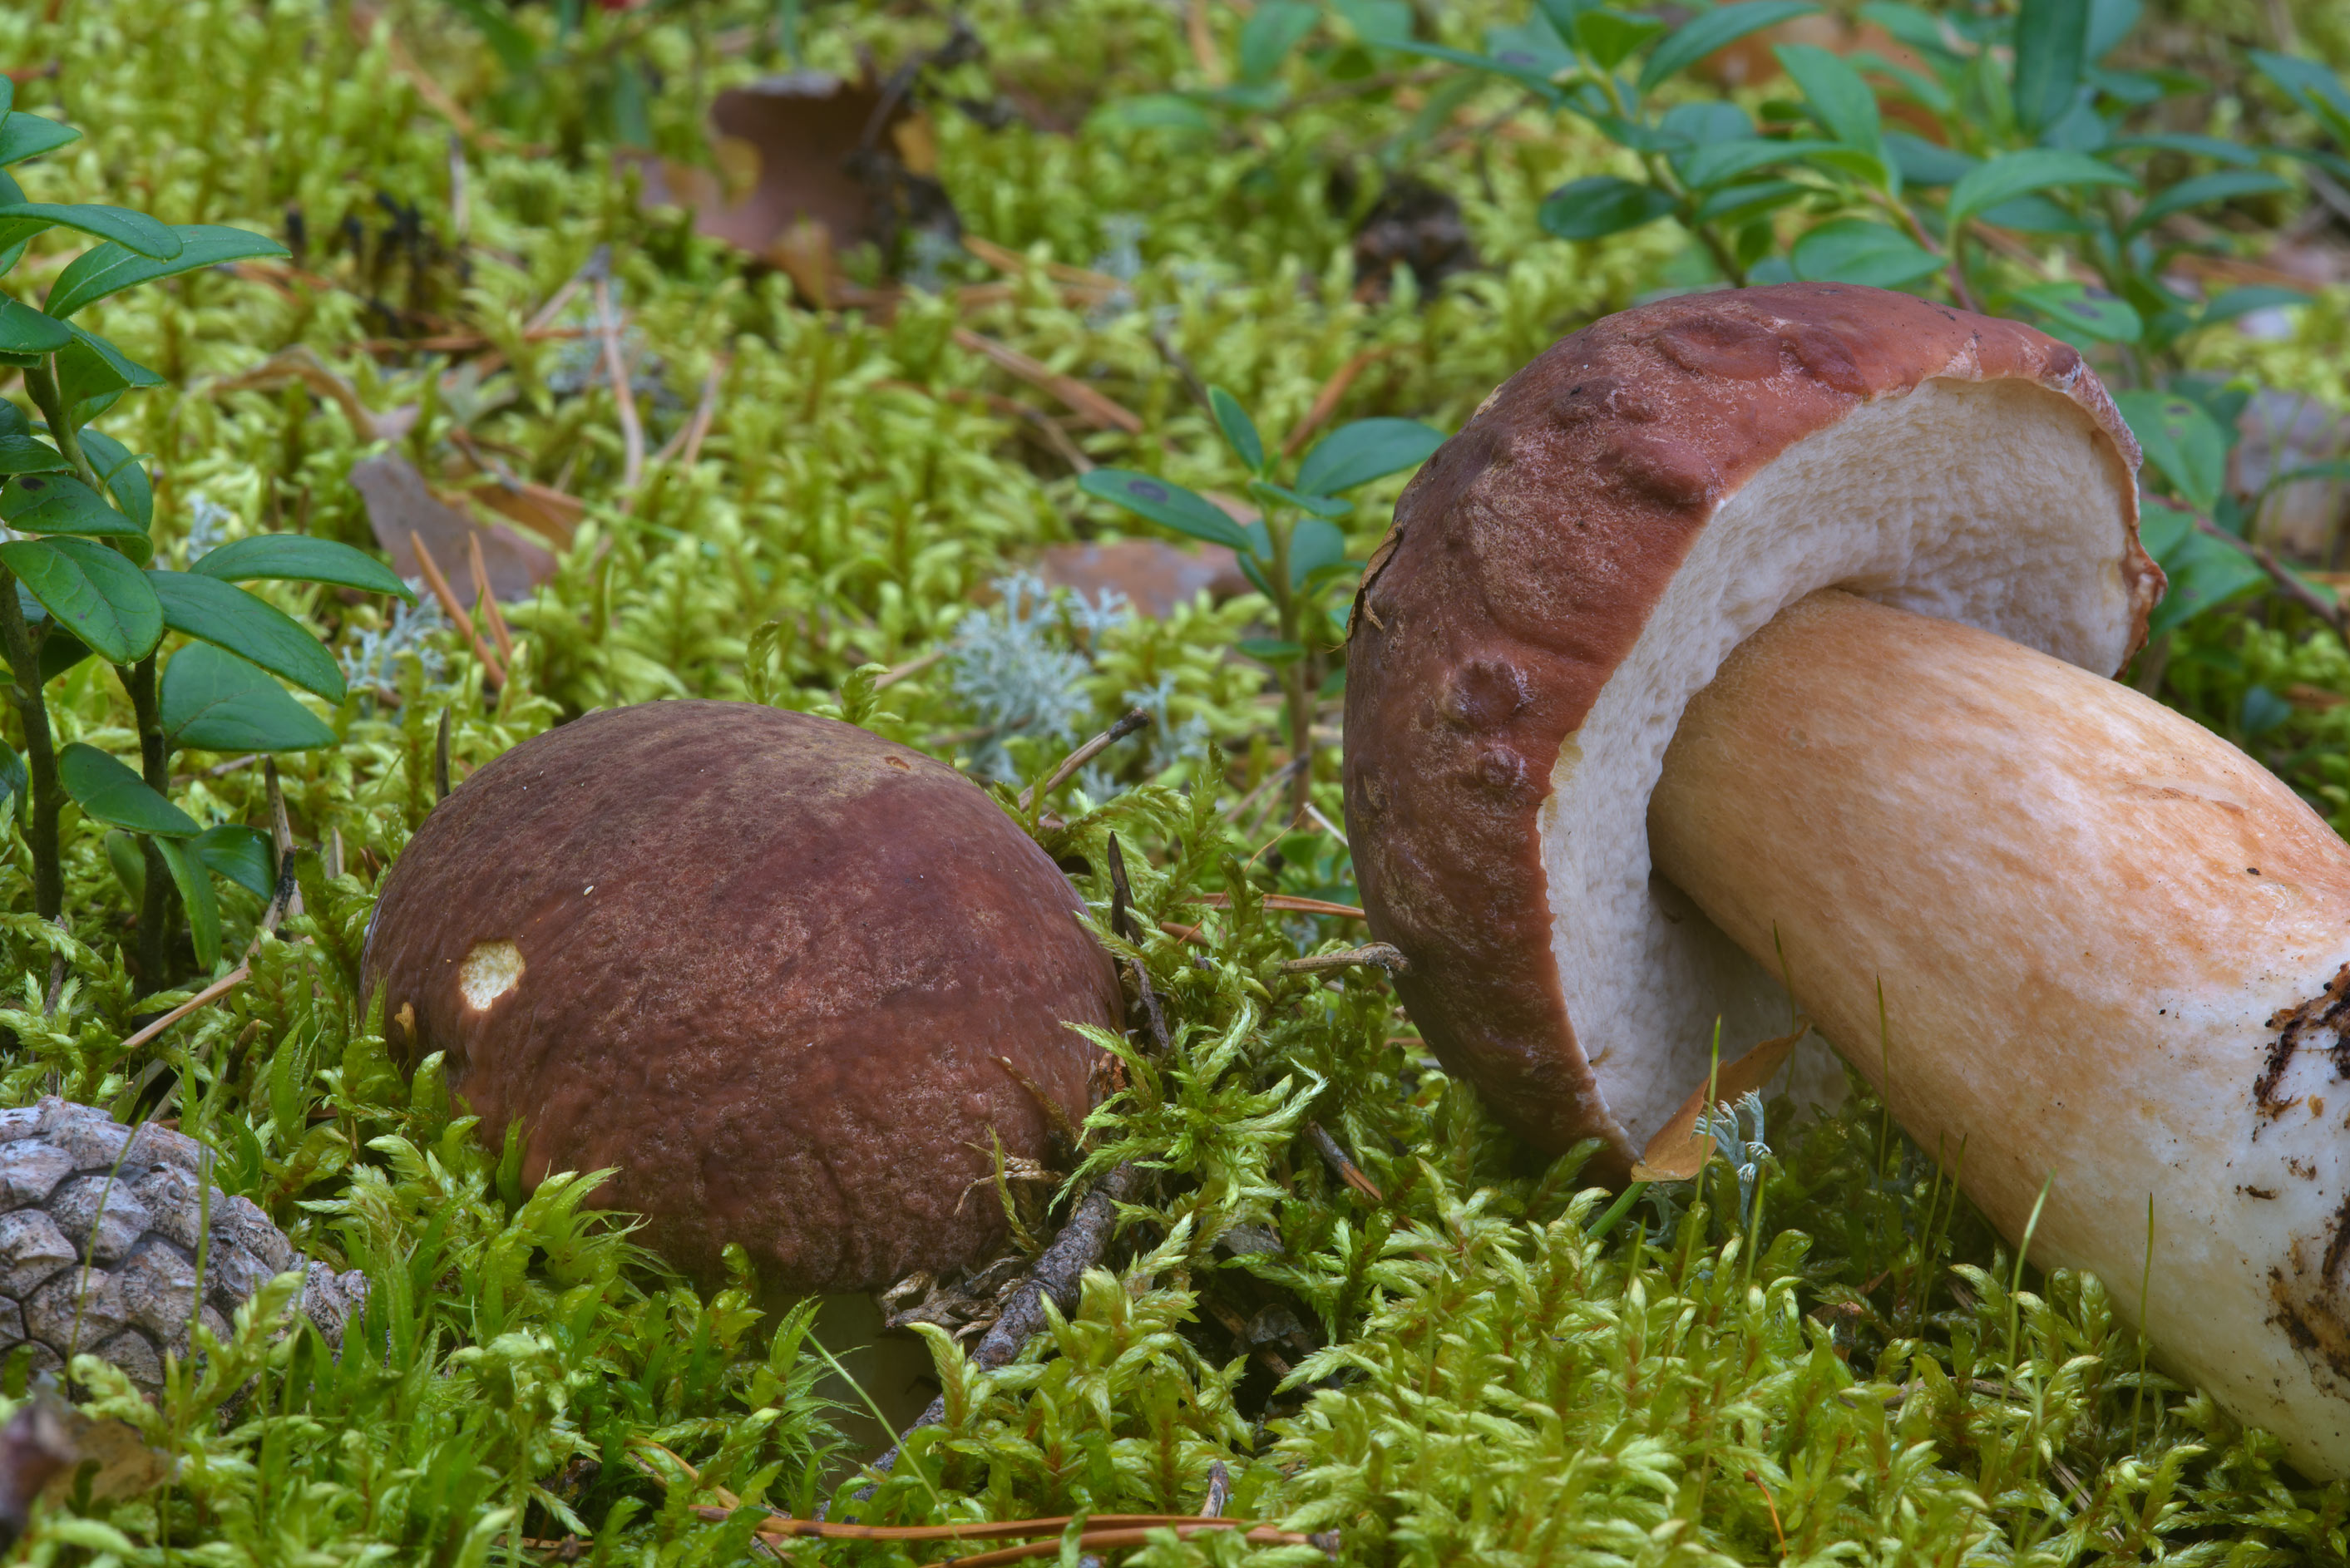 Pinewood king bolete mushrooms (Boletus...north from St.Petersburg. Russia